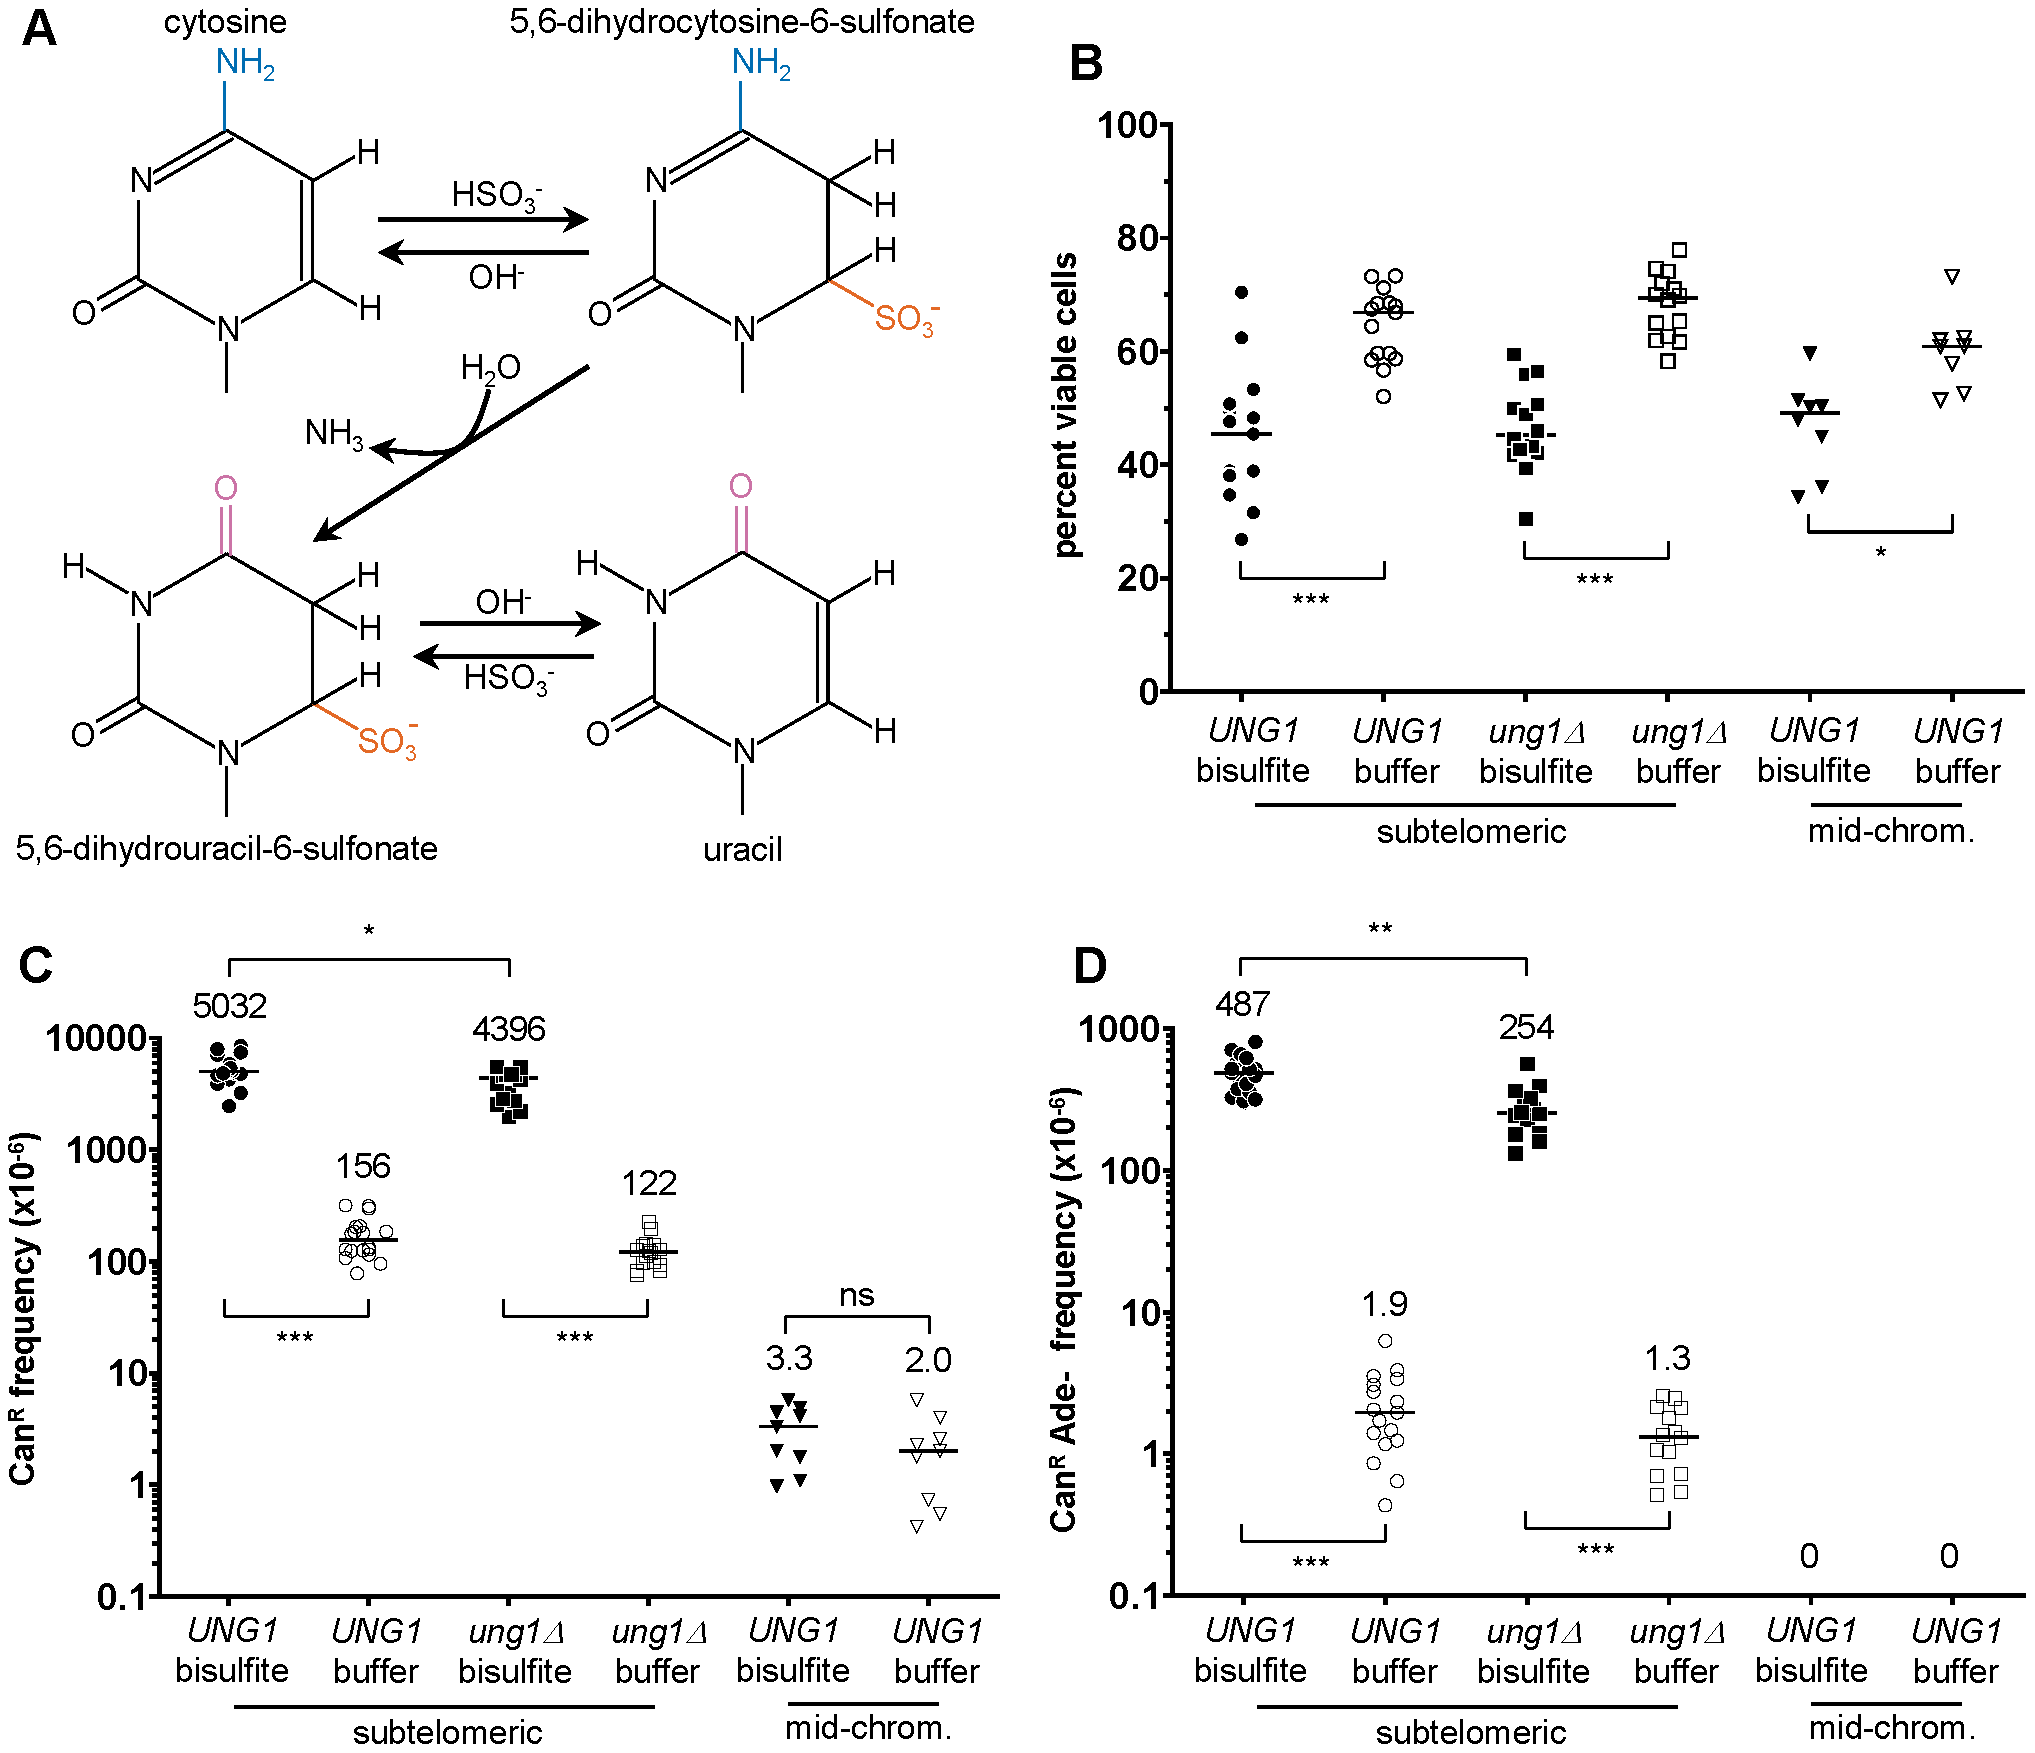 1% sodium bisulfite is a strong ssDNA–specific mutagen in vivo.